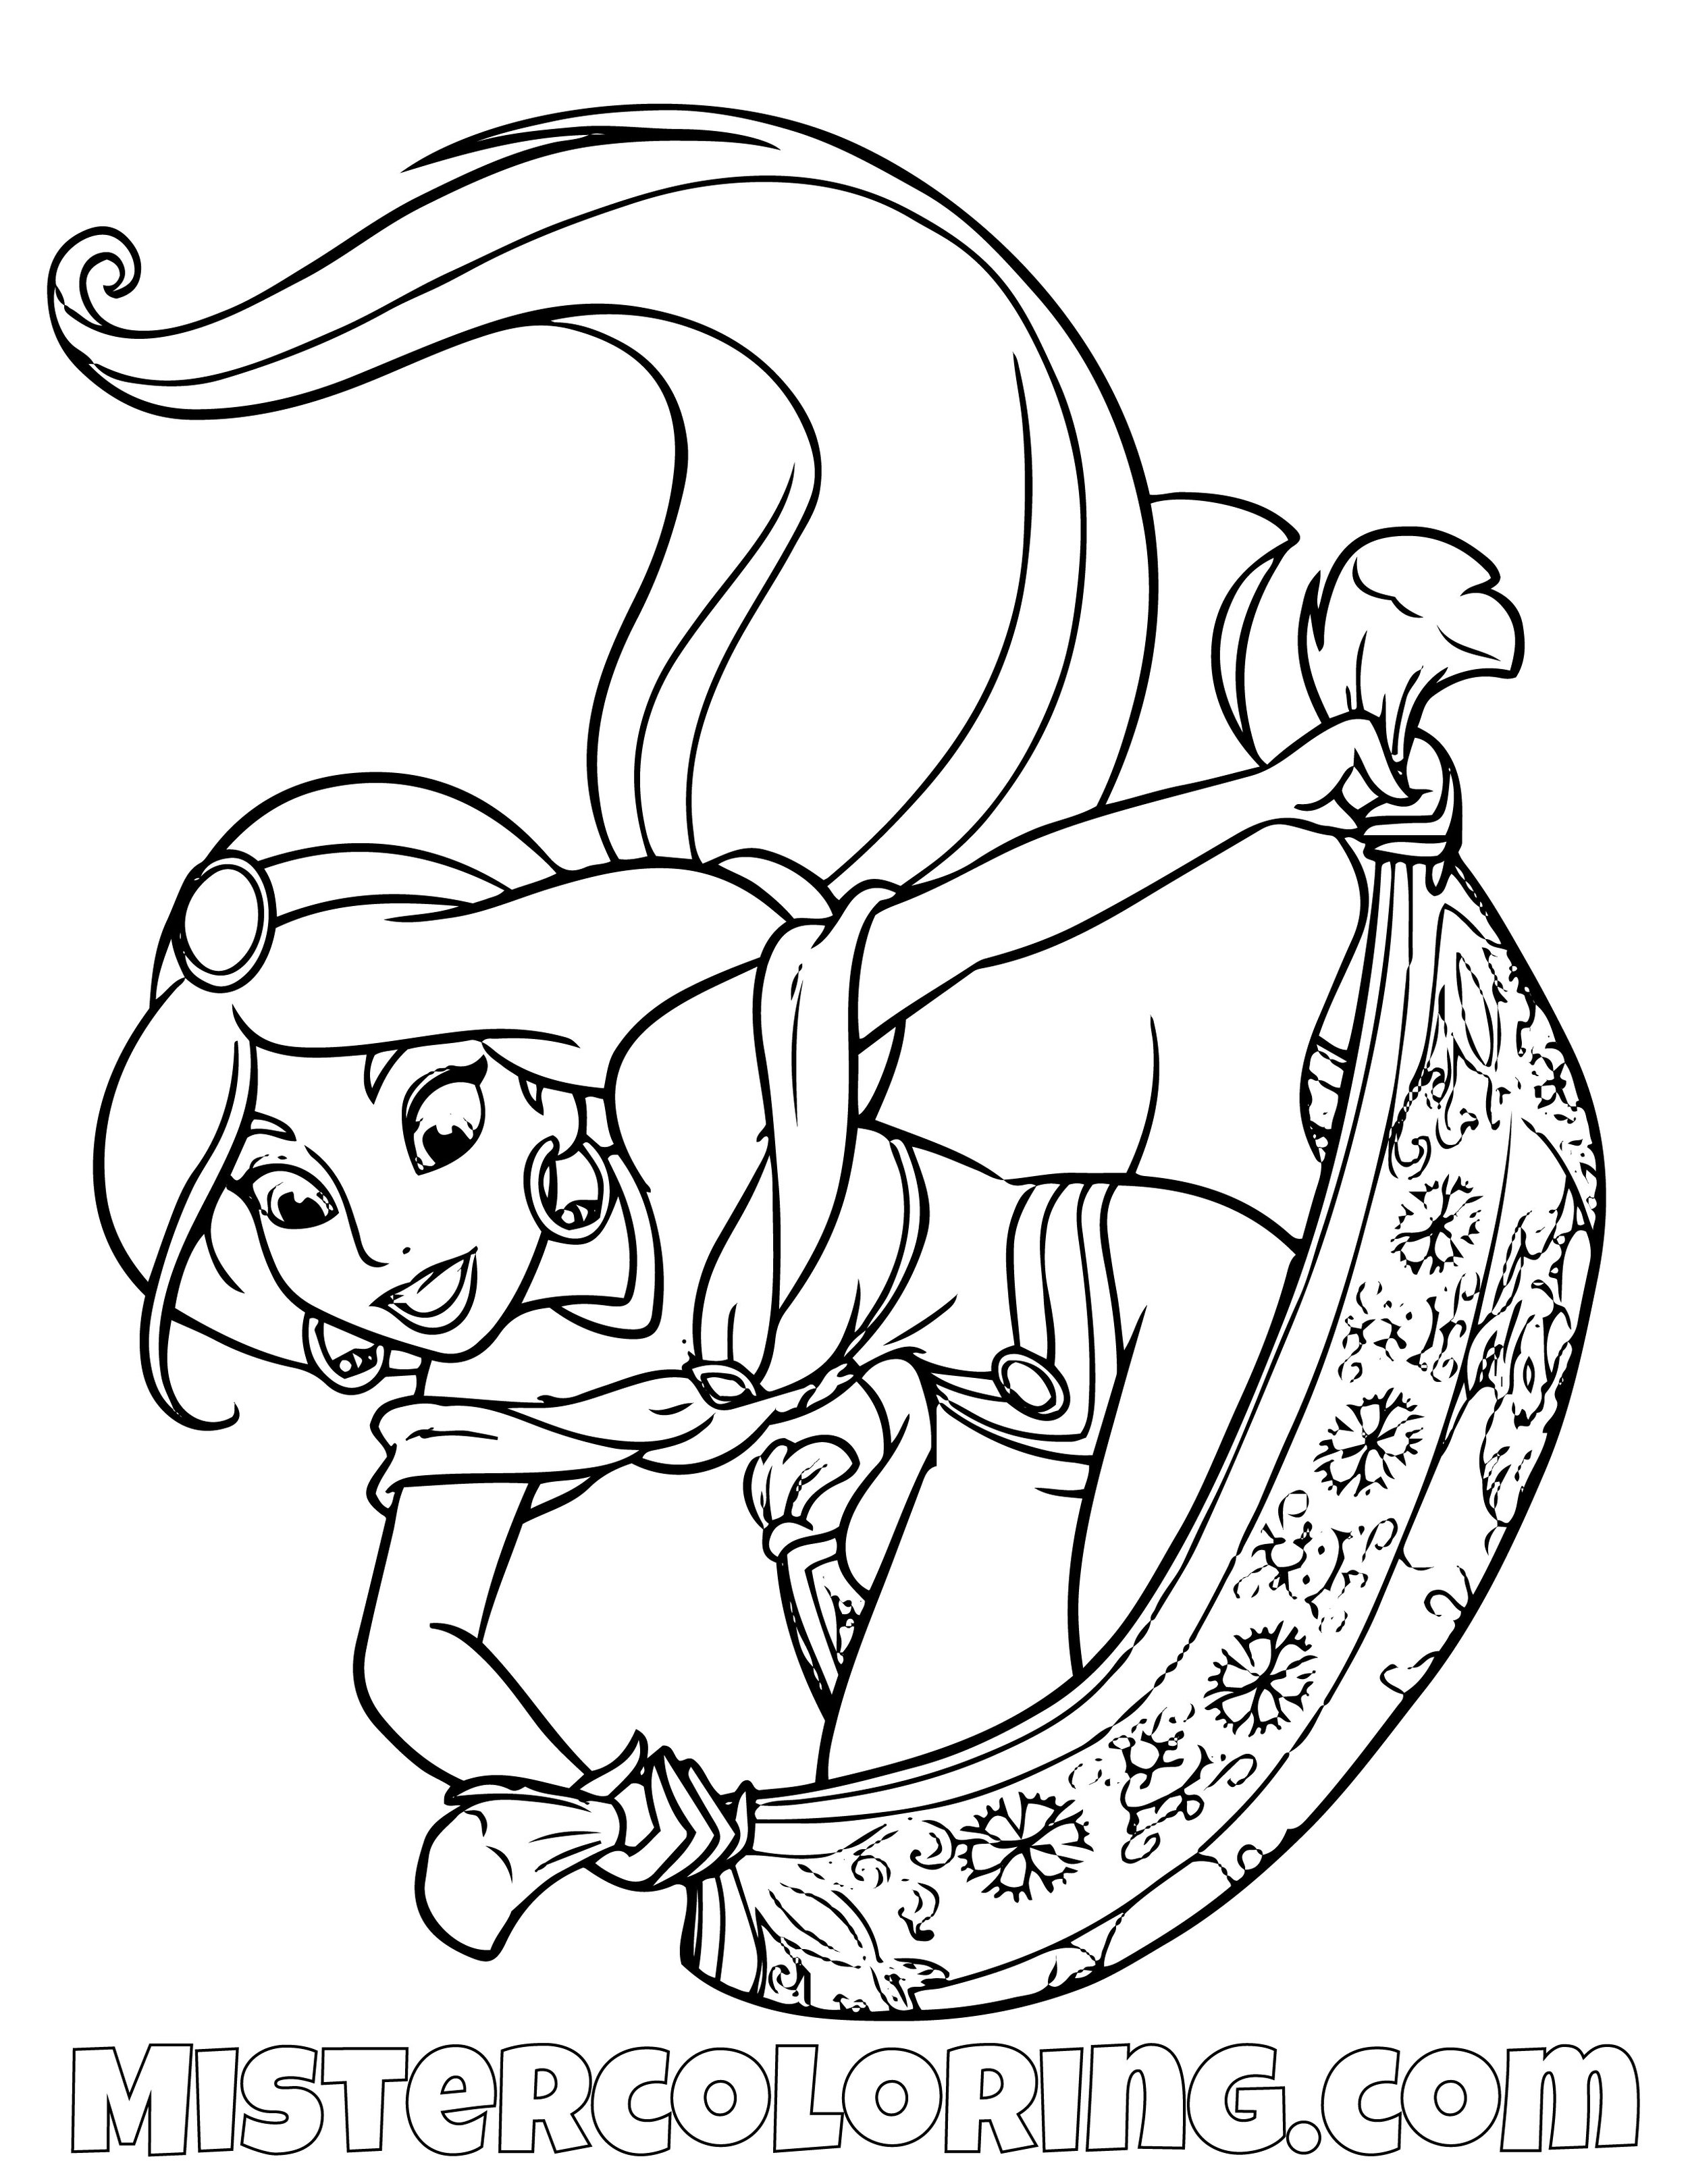 Princess Jasmine Riding Carpet Aladdin Coloring Page